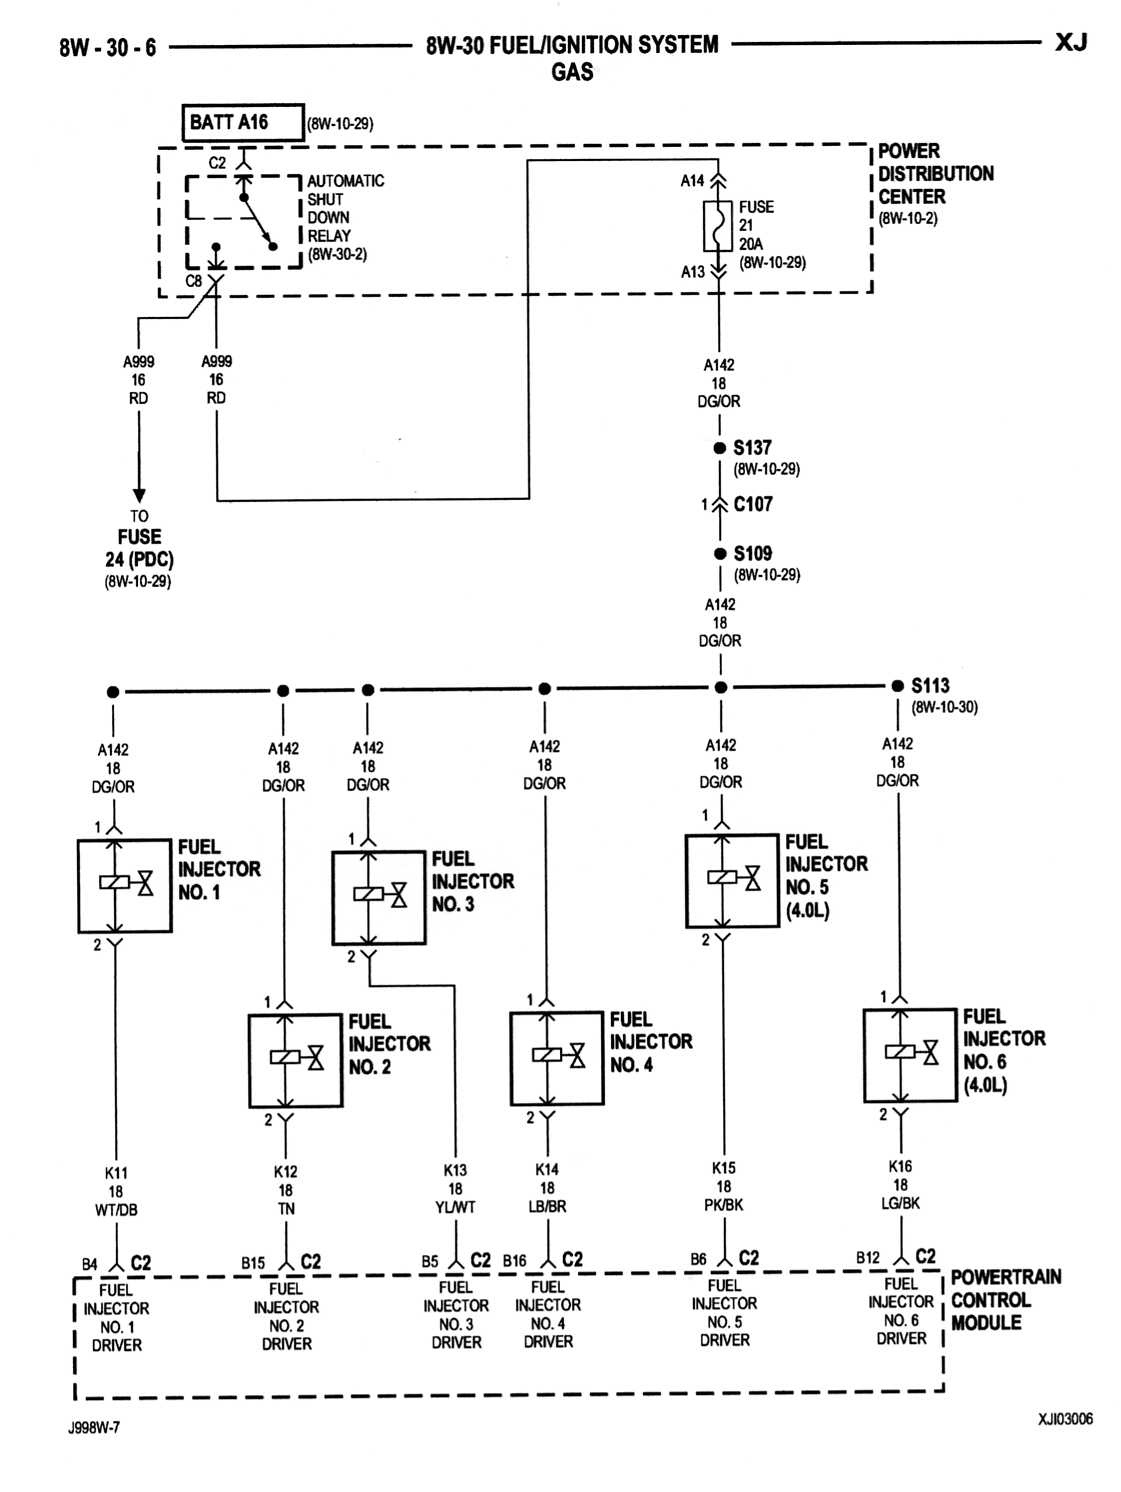 2003 Cadillac Cts Fuel Injector Wiring Diagram from 2020cadillac.com